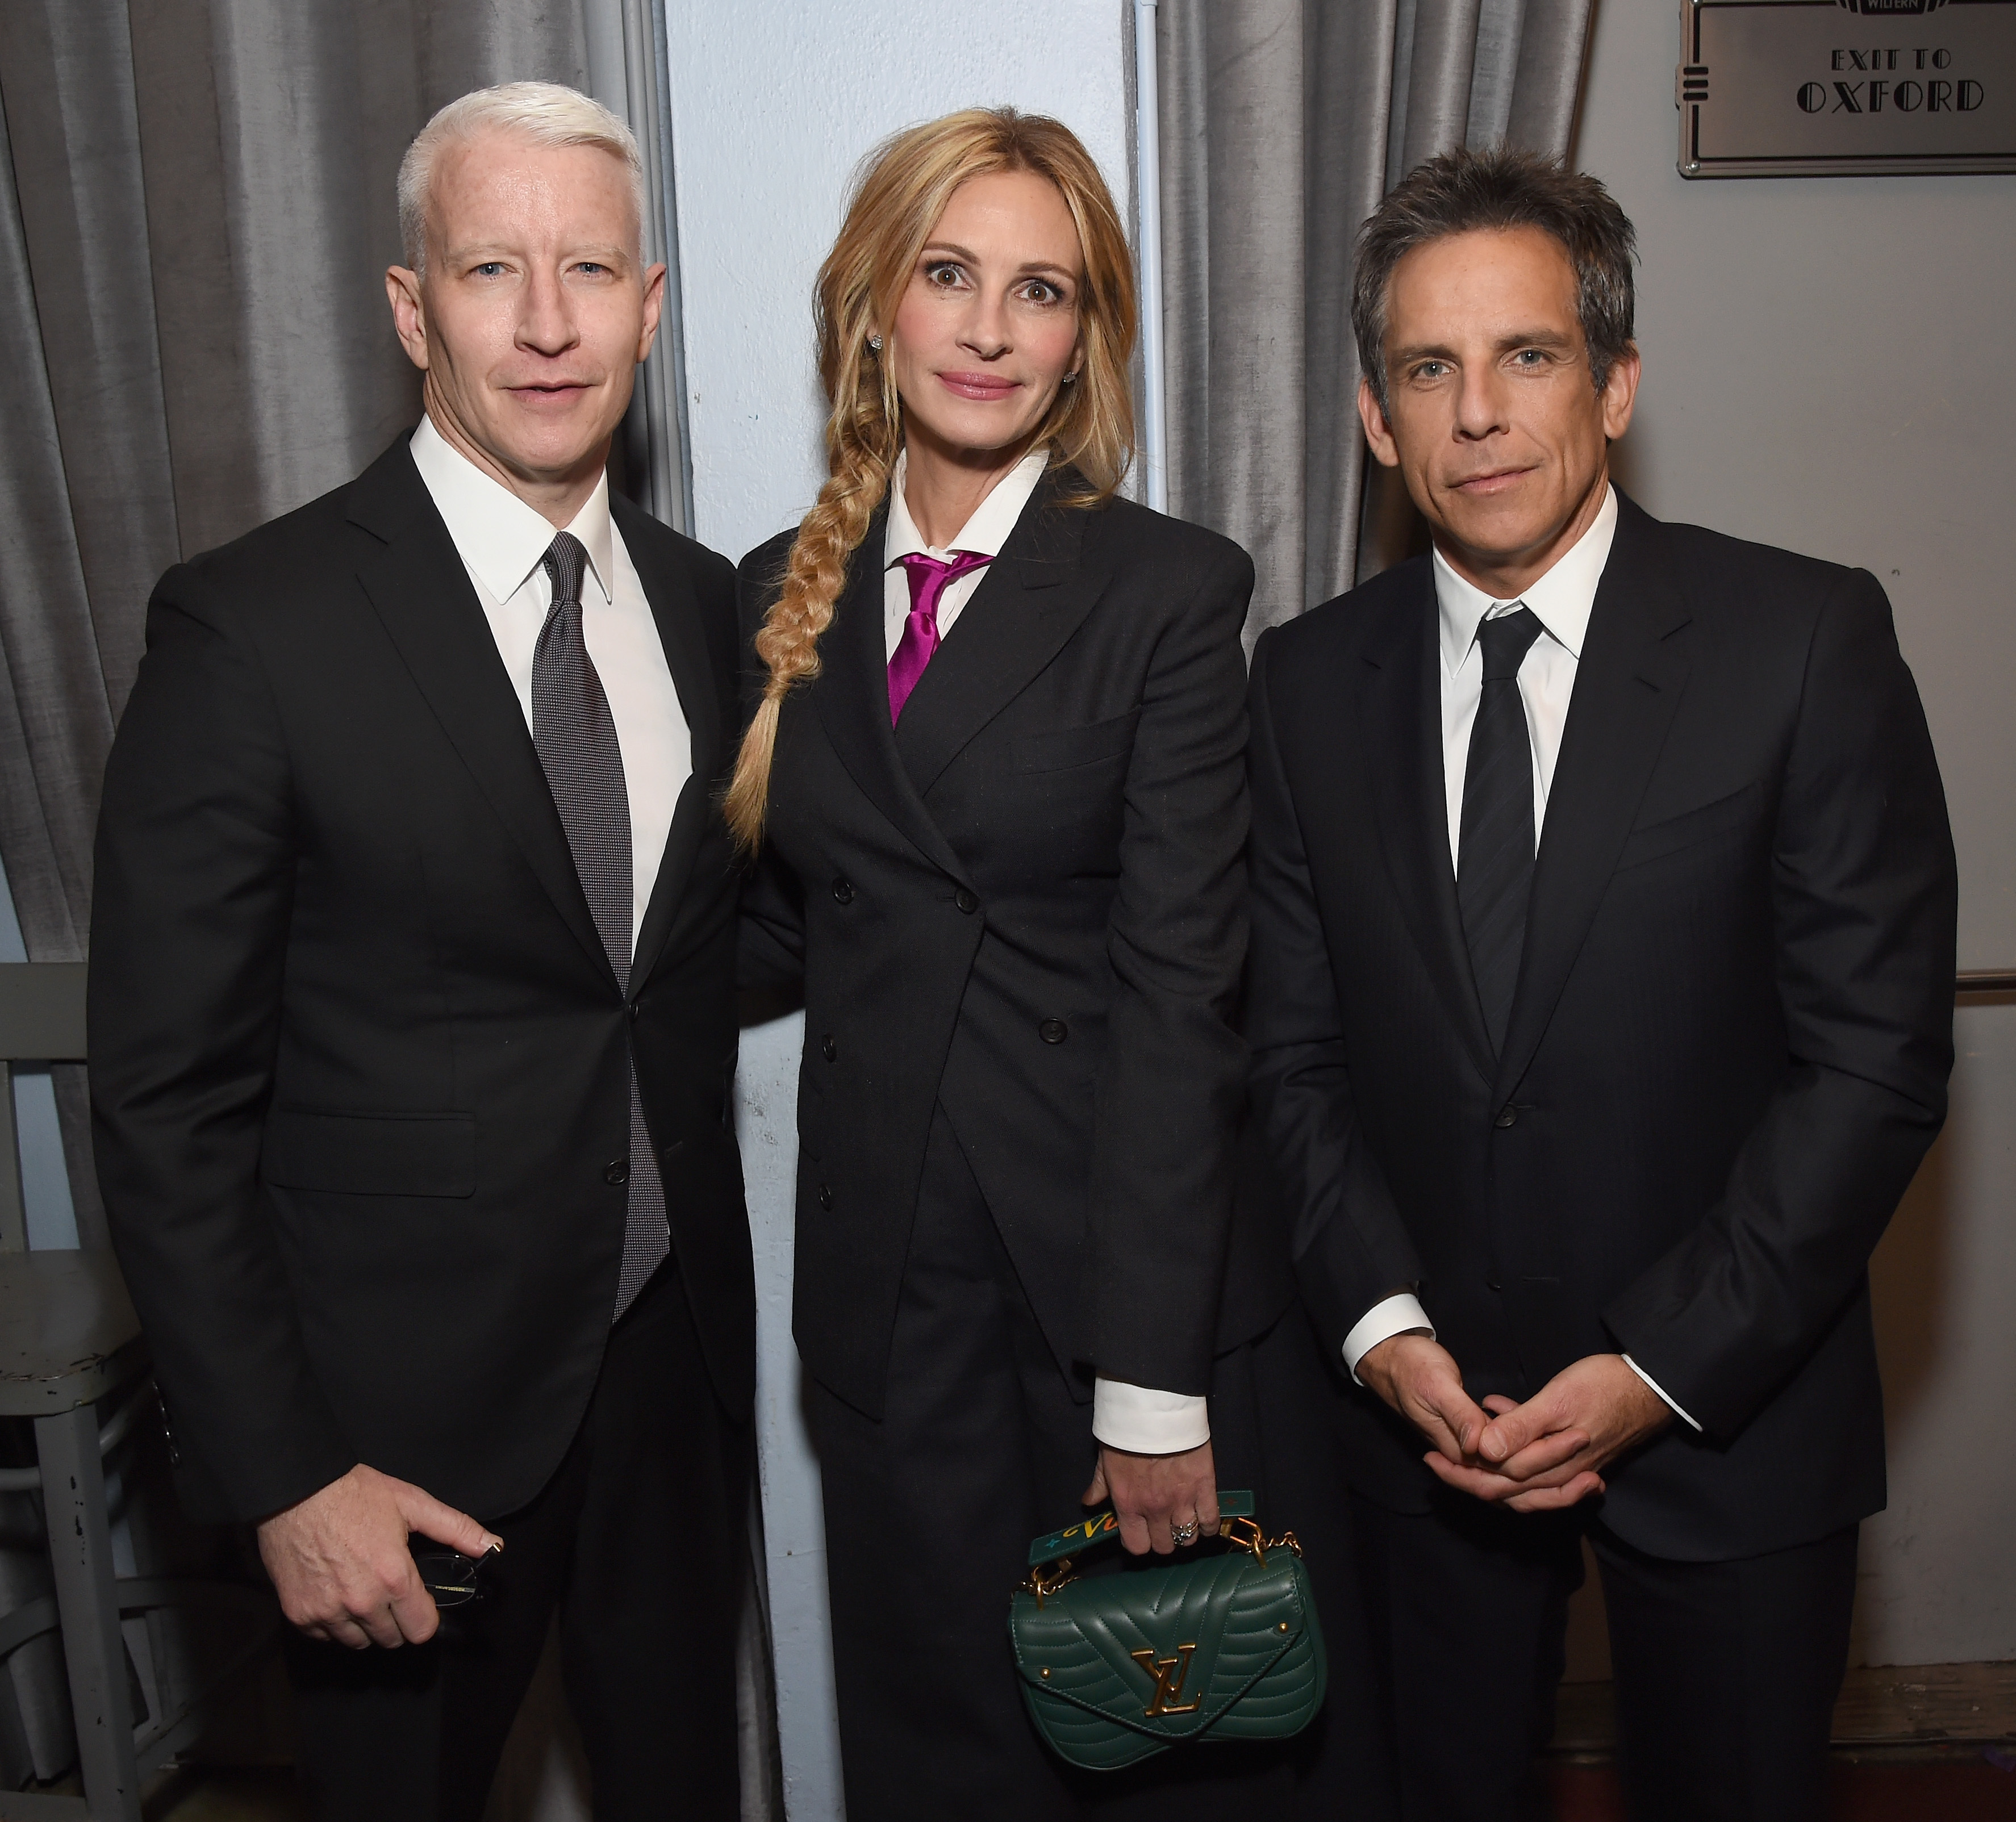 Anderson Cooper, Julia Roberts and Ben Stiller attend the Sean Penn CORE Gala with Casamigos tequila at The Wiltern in Los Angeles on Jan. 5, 2019.